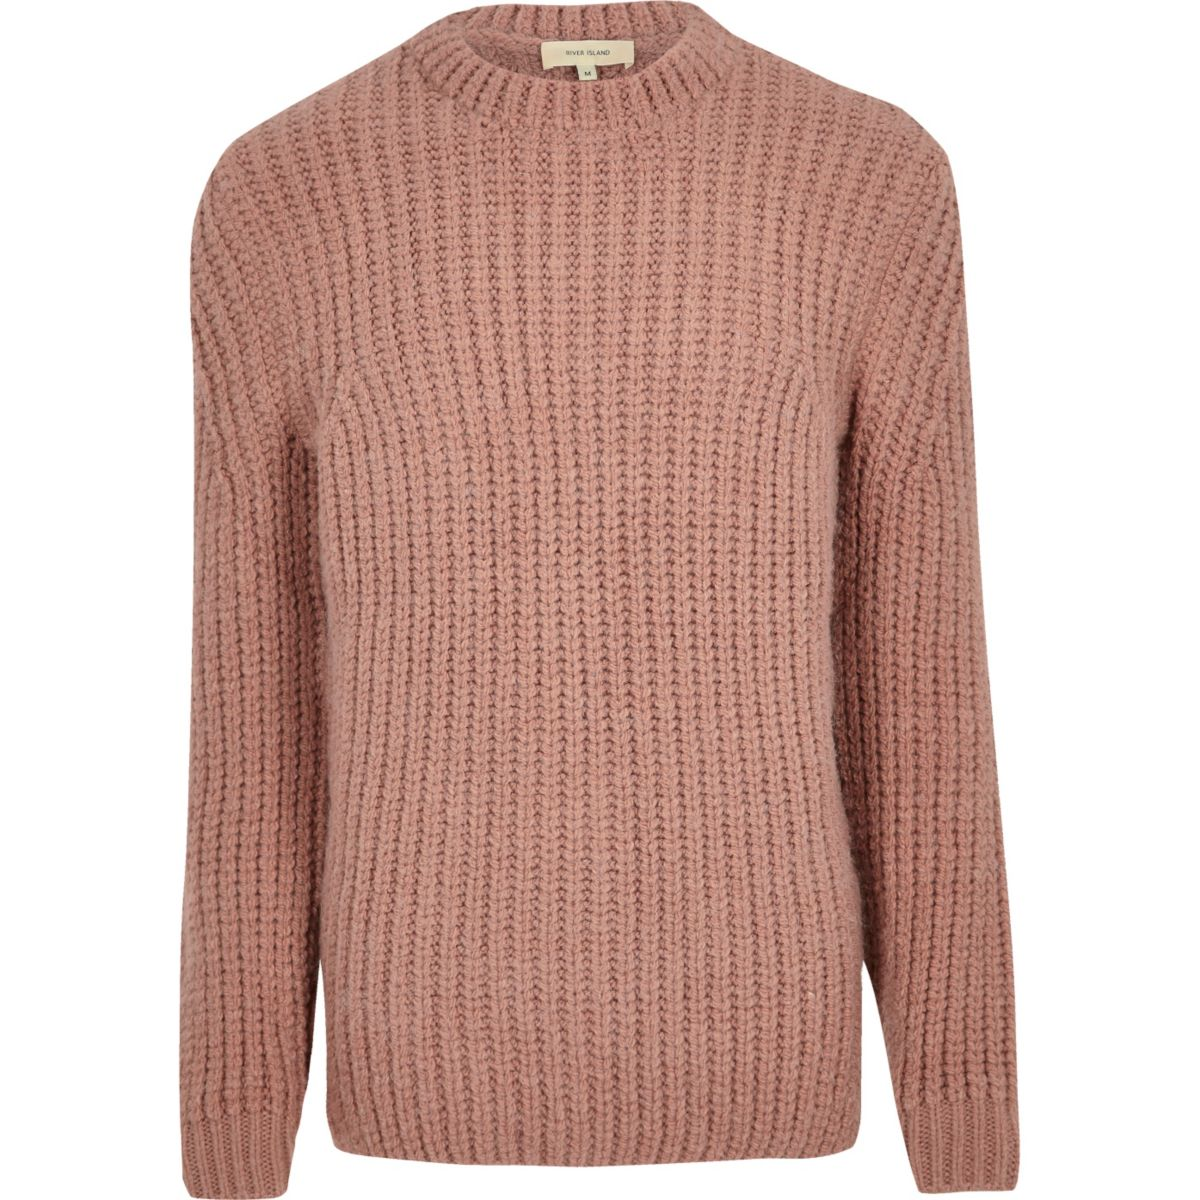 Pink chunky knit jumper - Jumpers & Cardigans - Sale - men